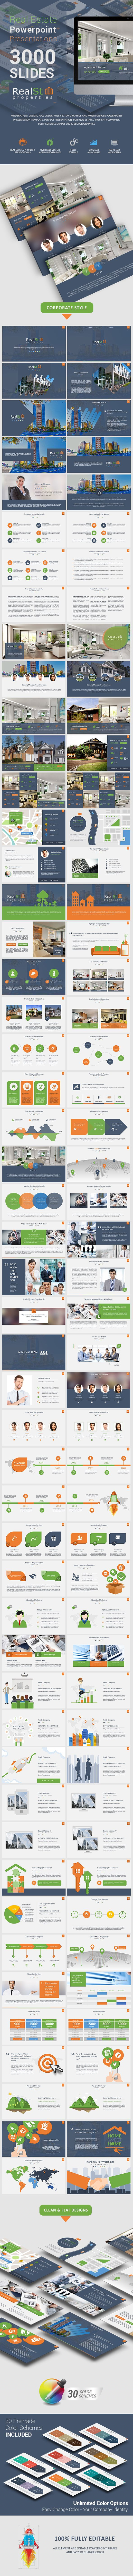 RealSt Property - Powerpoint Presentations (PowerPoint Templates)